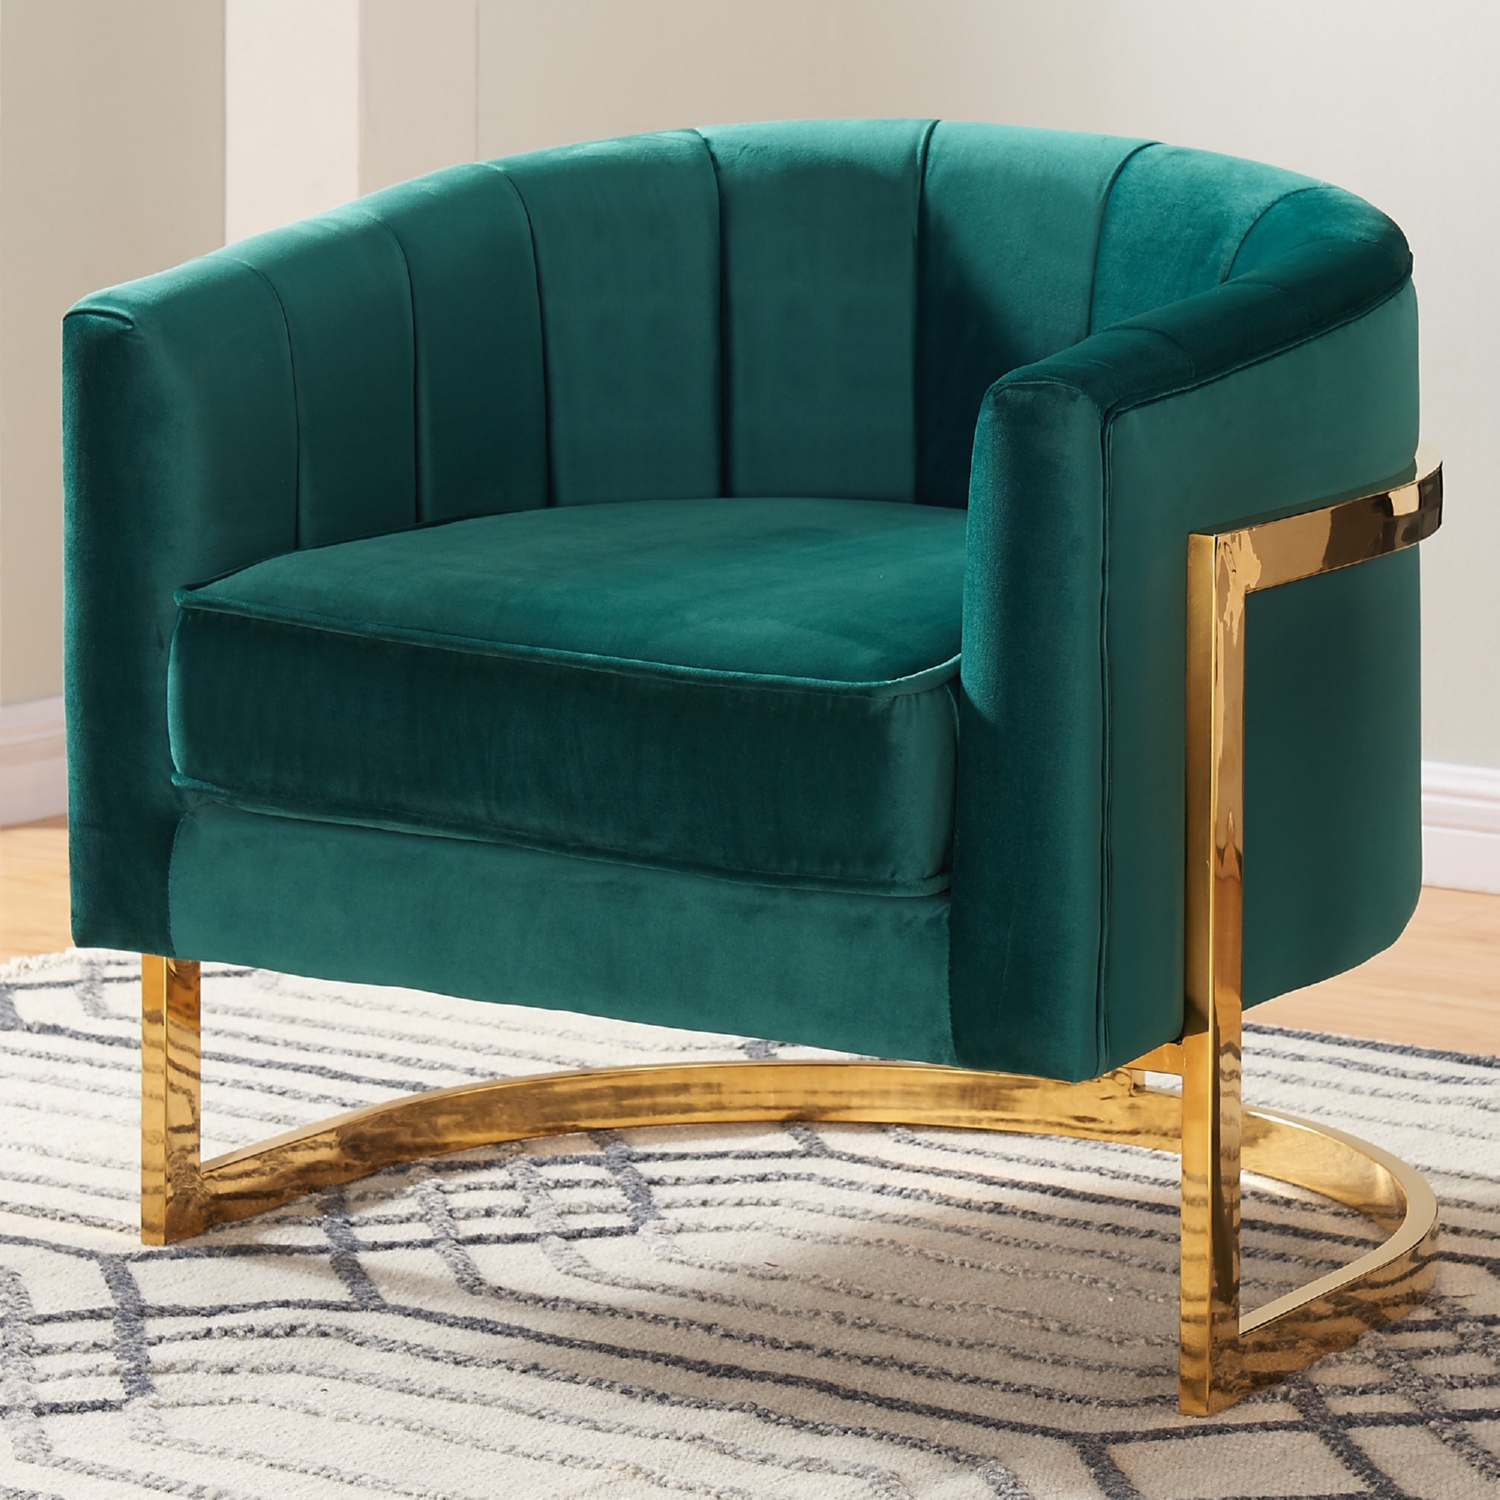 Emerald Green Accent Chair Green Velvet Chair Andaw35 Wendycorsistaubcommunity